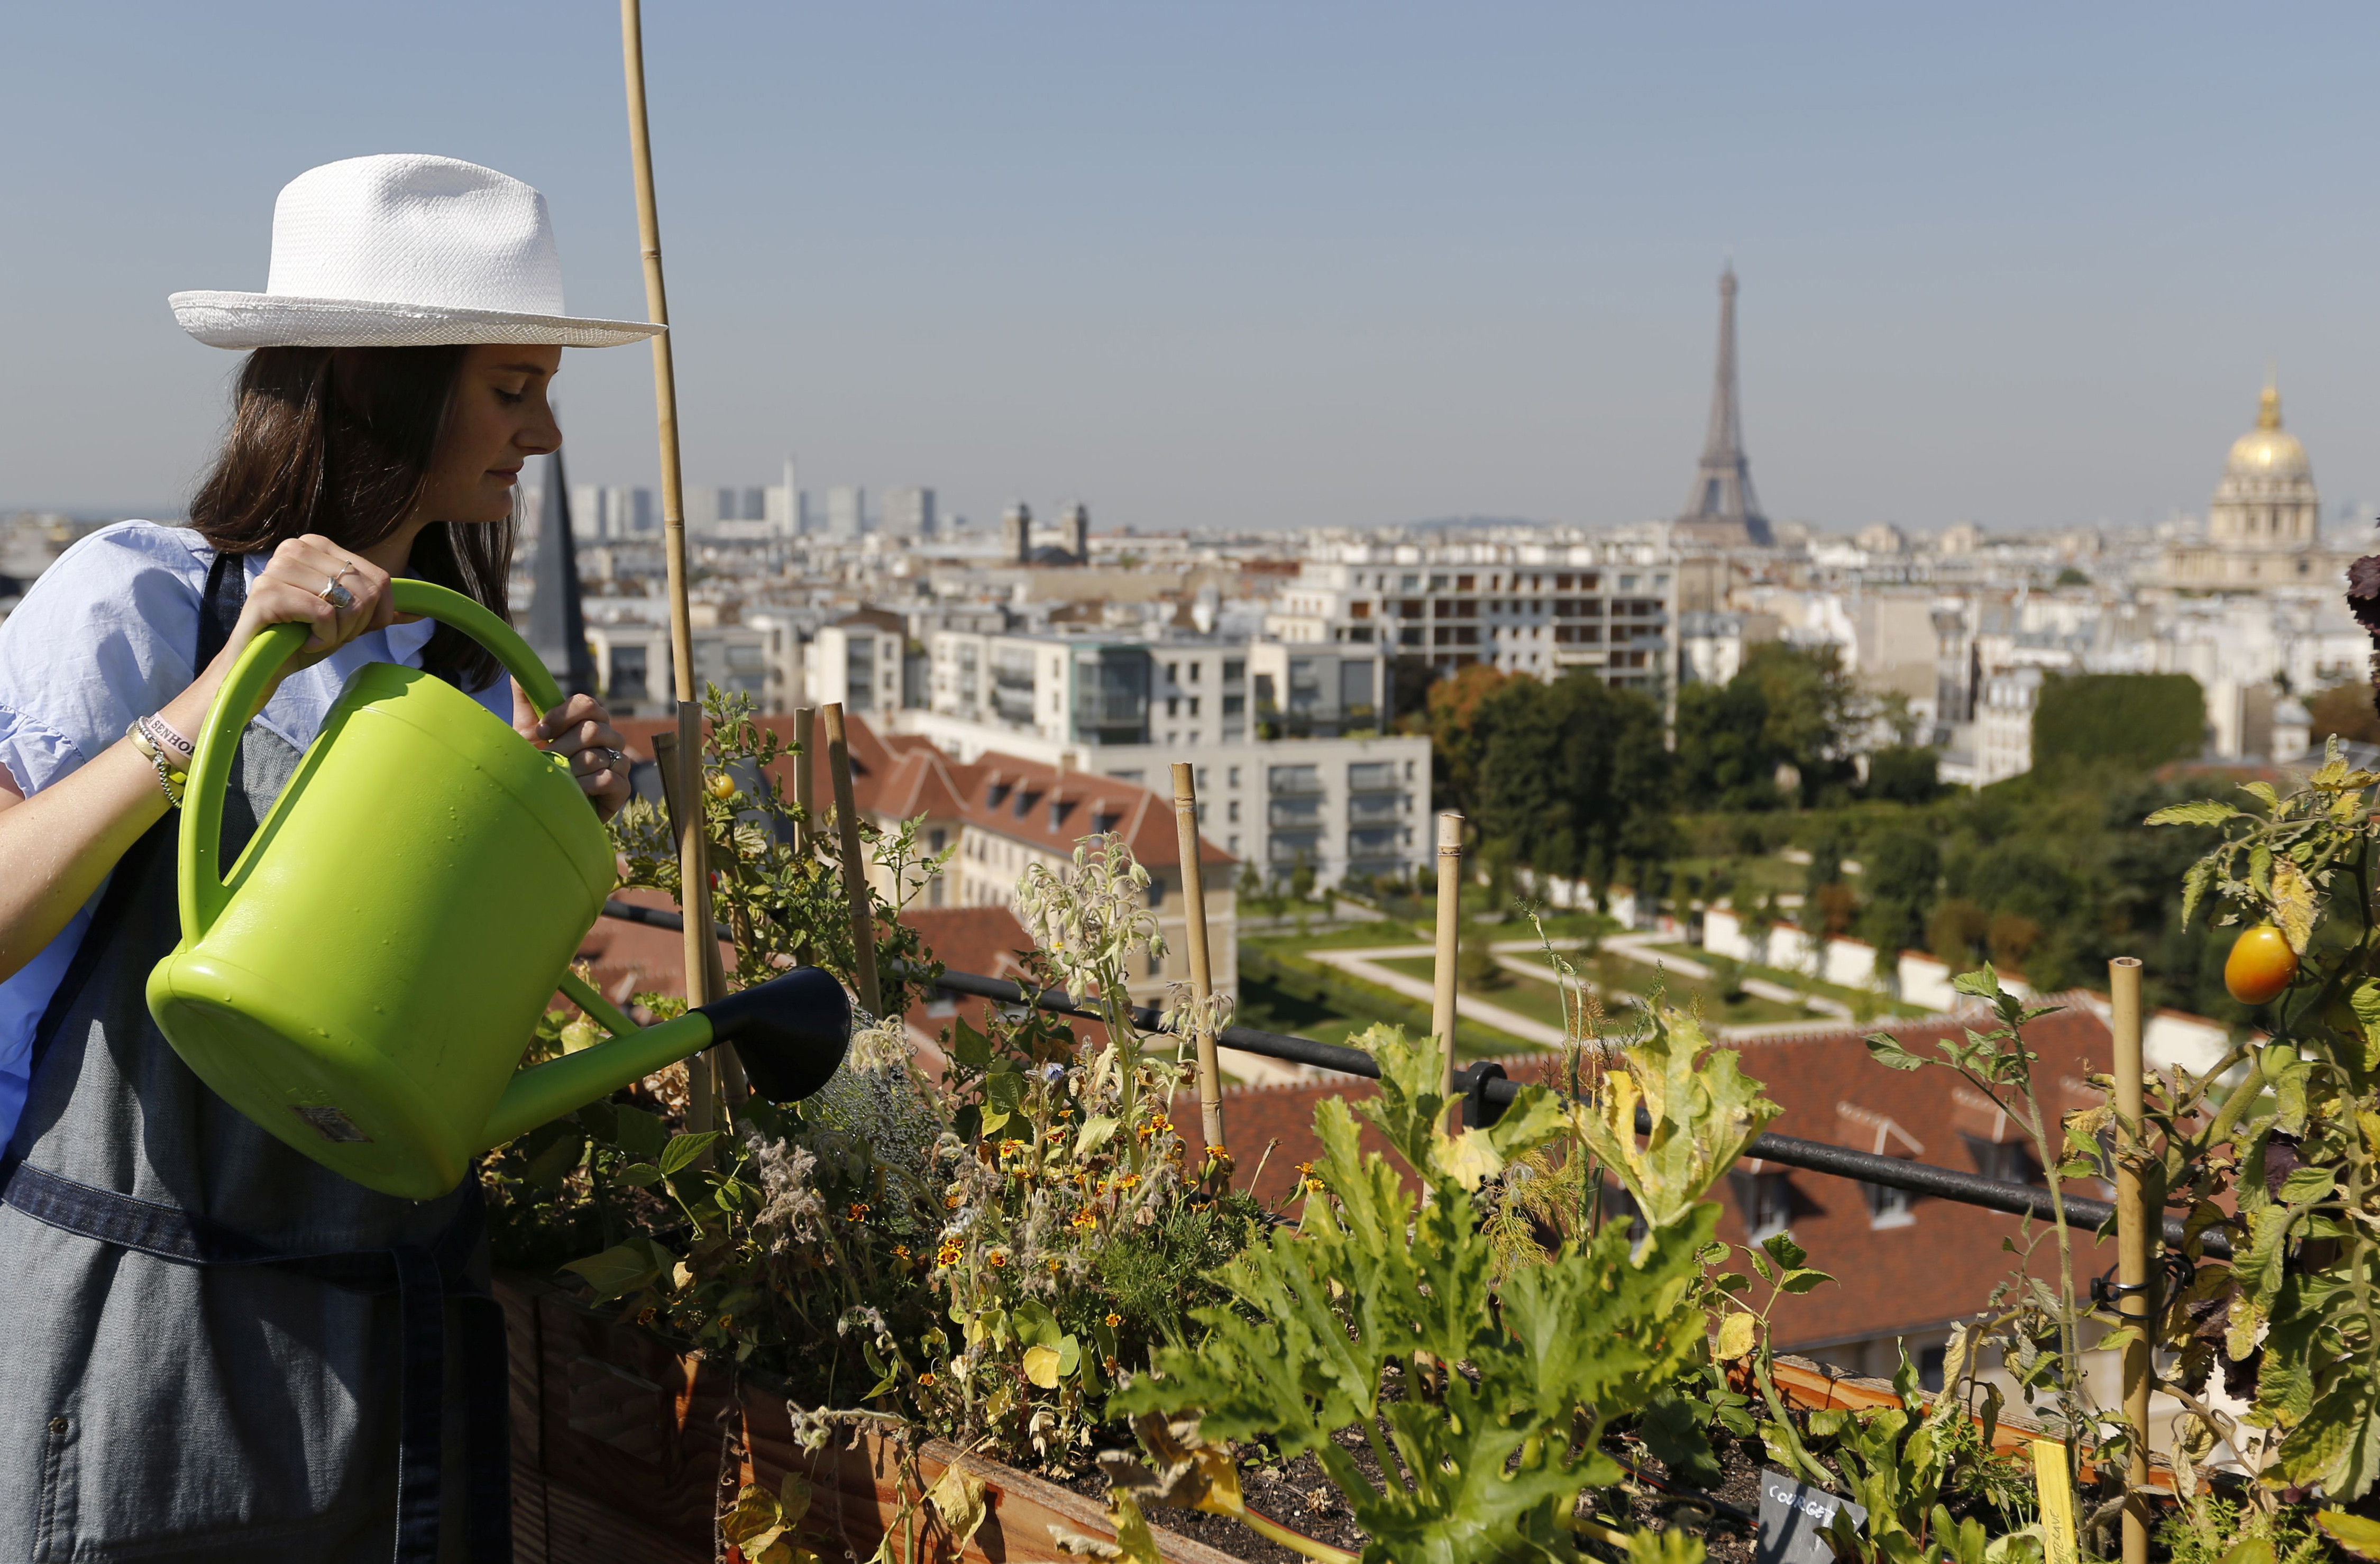 Charlotte Arnoux, recruitment officer and first-time gardener, waters plants on the 700 square metre (7500 square feet) rooftop of the Bon Marche, where the store's employees grow some 60 kinds of fruits and vegetables such as strawberries, zucchinis, mint and other herbs in their urban garden with a view of the capital in Paris, France, August 26, 2016.  REUTERS/Regis Duvignau  - LR1EC8Q1AH2O9